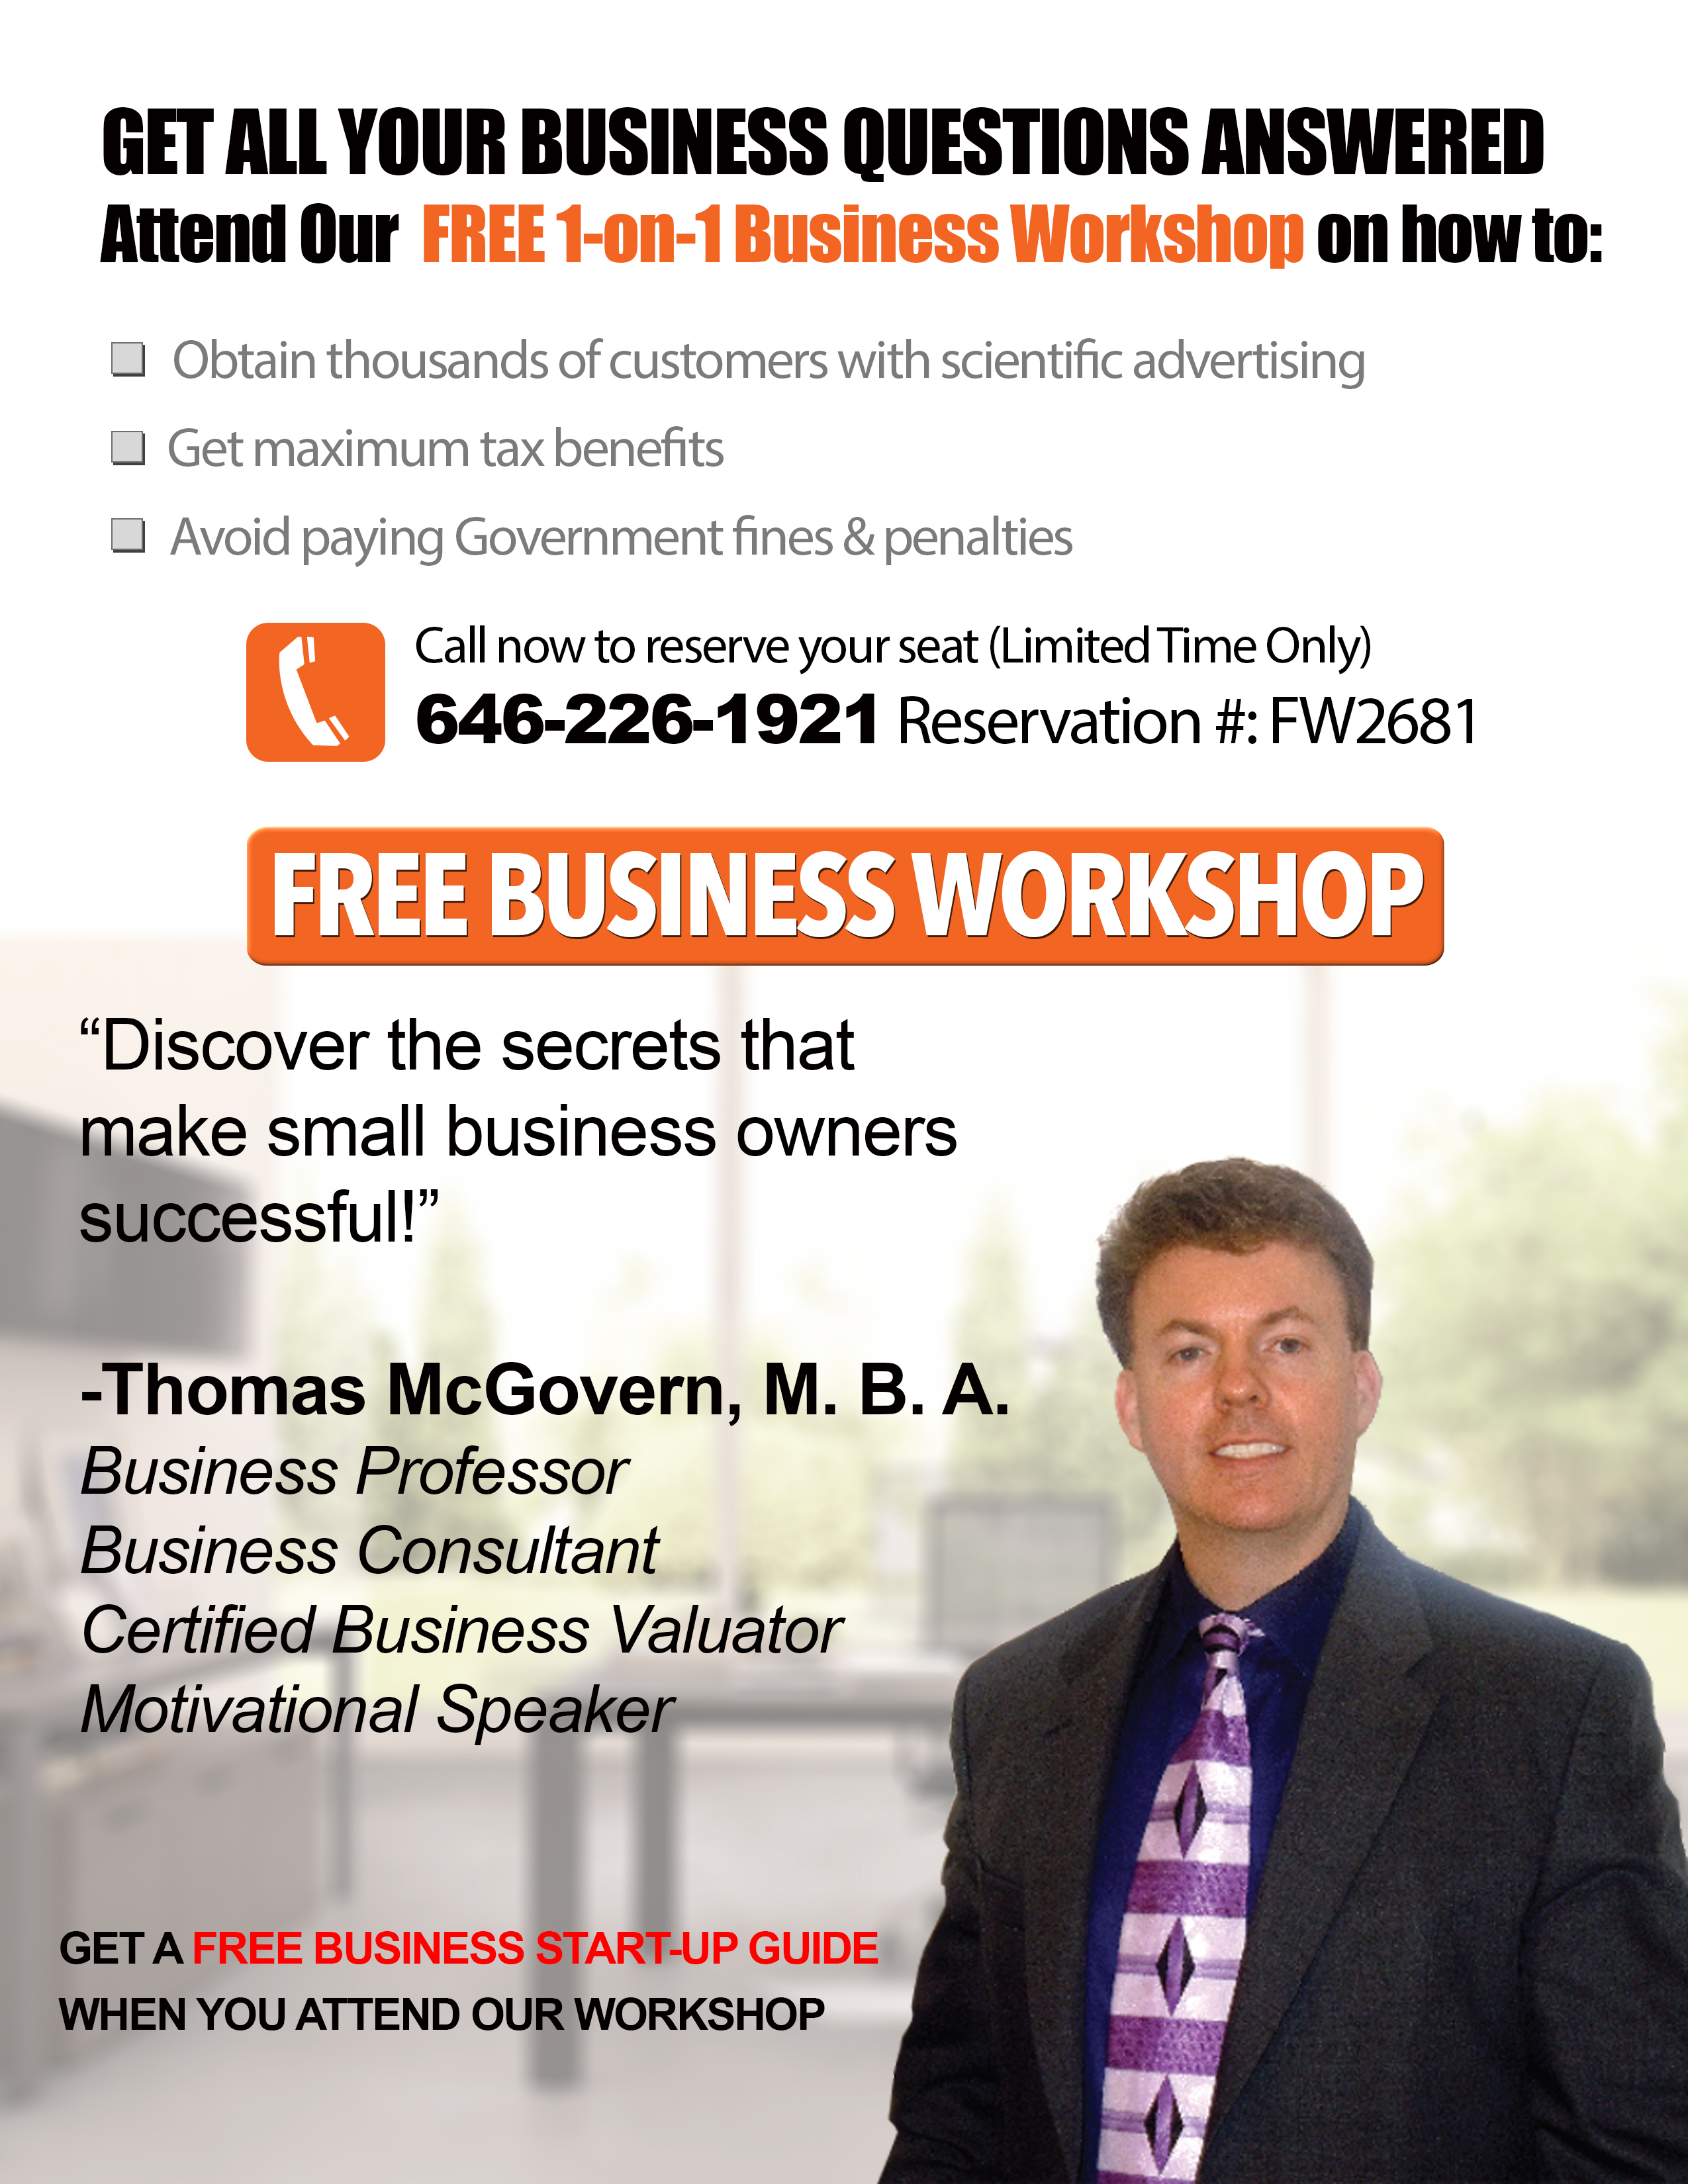 FREE 1-ON-1 BUSINESS WORKSHOP, NY BUSINESS ASSOCIATION WORKSHOP, BUSINESS WORKSHOP NY